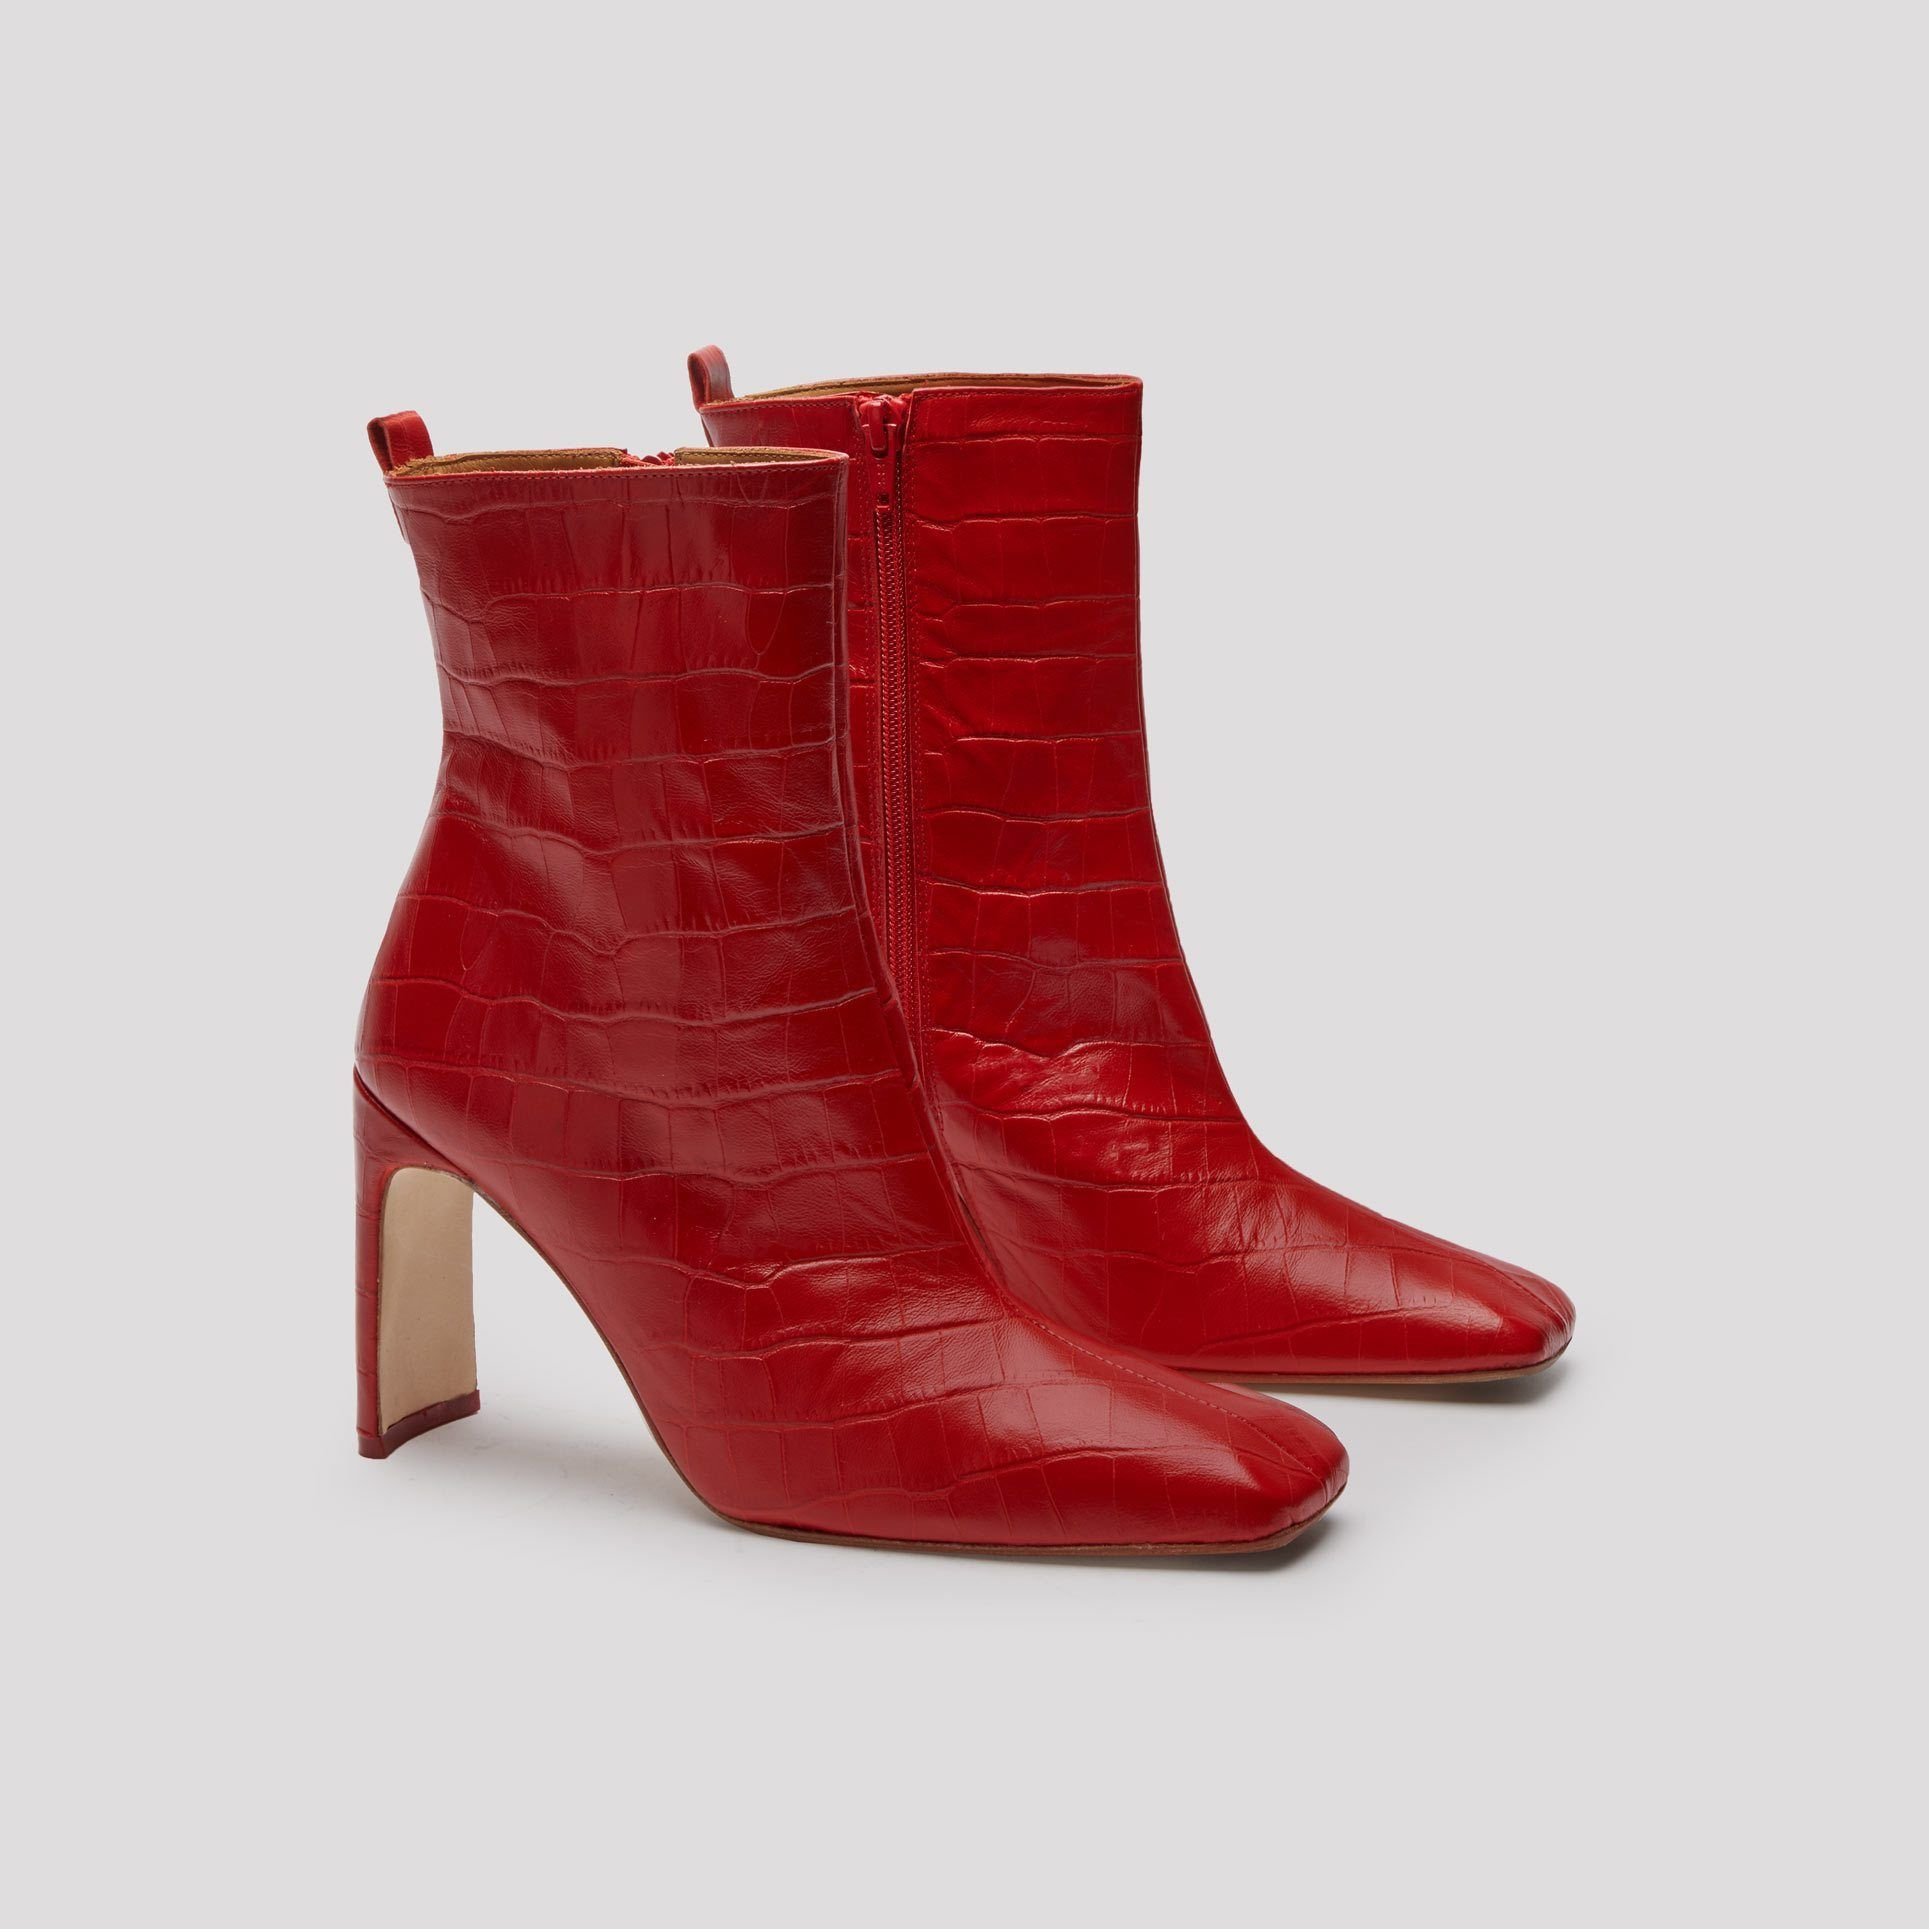 a94205d0369c7 Miista-Marcelle Red Croc Leather Boots- Winter Shoes For Women